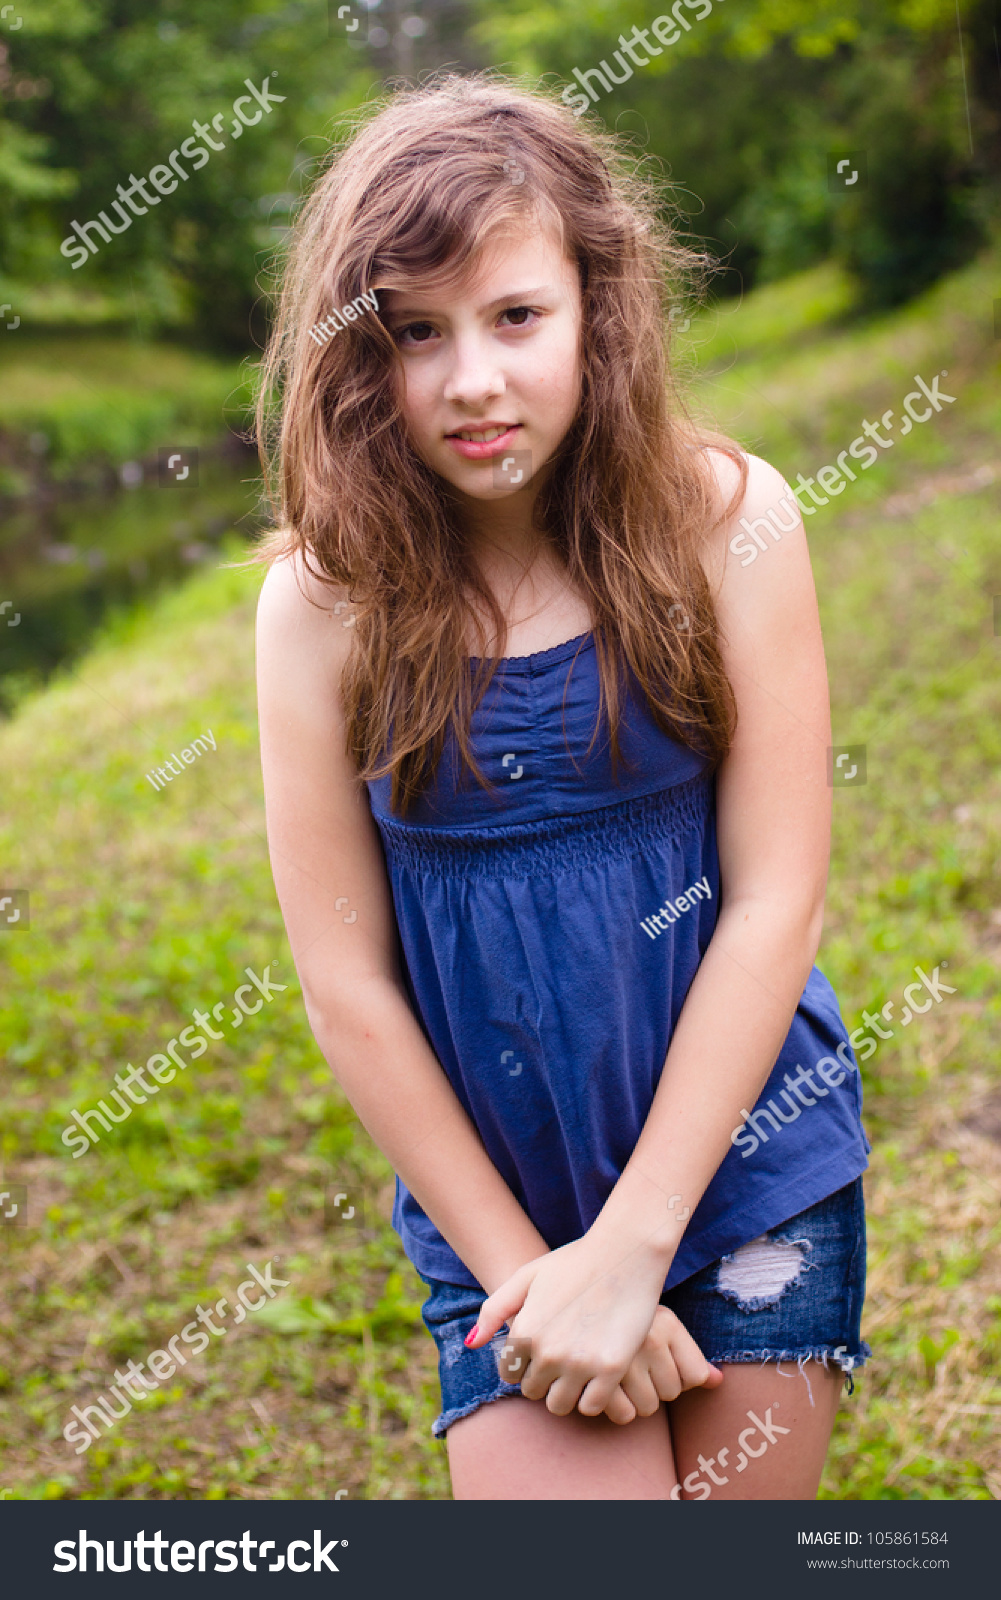 cute teenage girl looking shy in natural outdoor setting. Black Bedroom Furniture Sets. Home Design Ideas